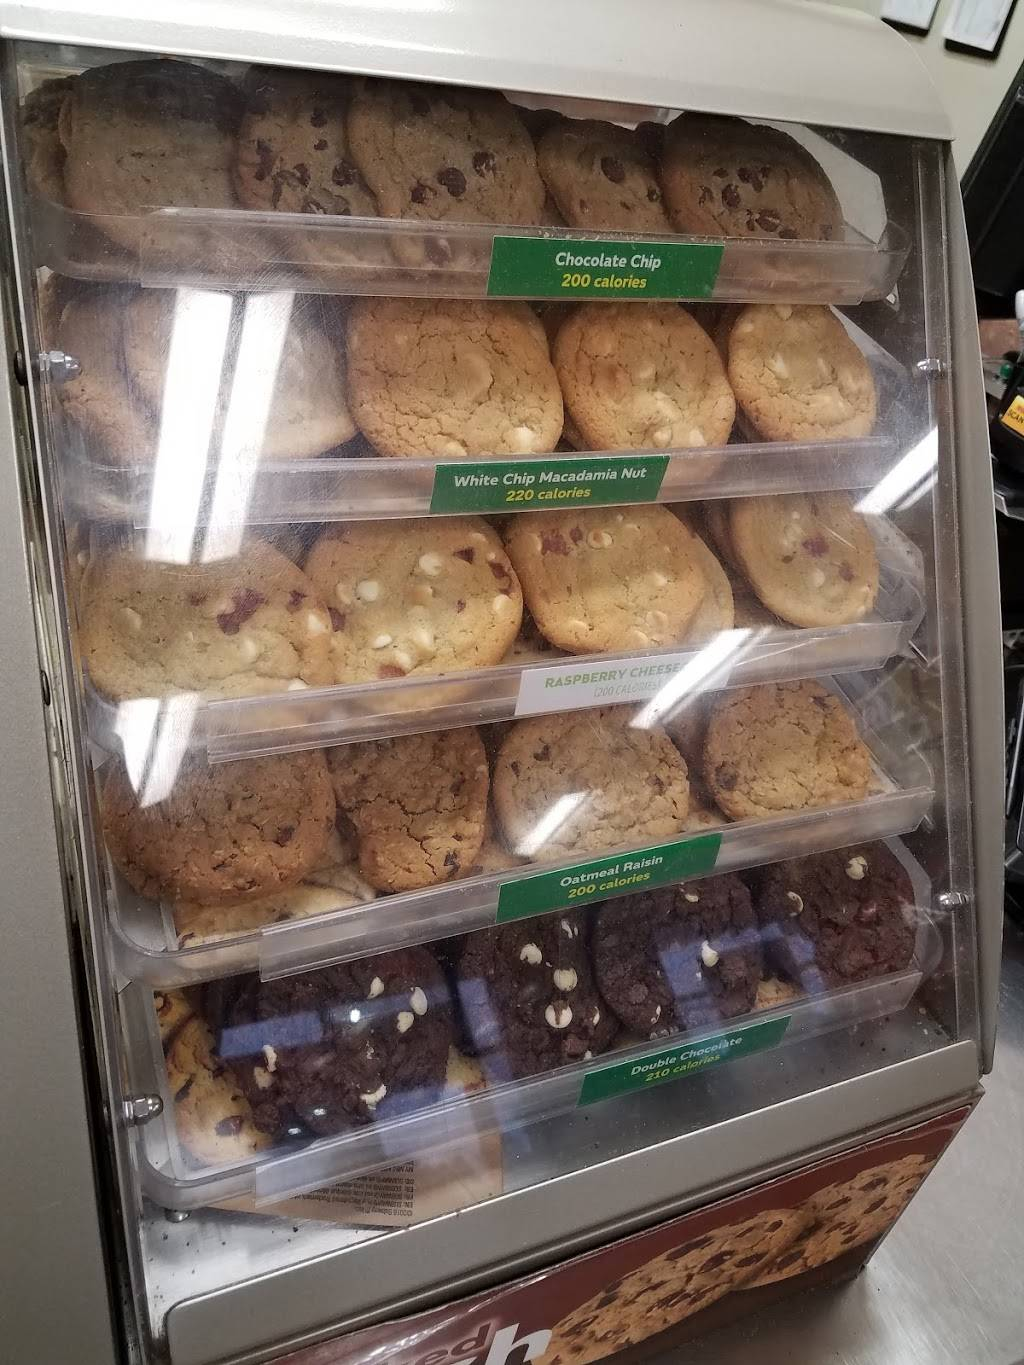 Subway | restaurant | 2015 W Lucas St, Florence, SC 29501, USA | 8436622673 OR +1 843-662-2673